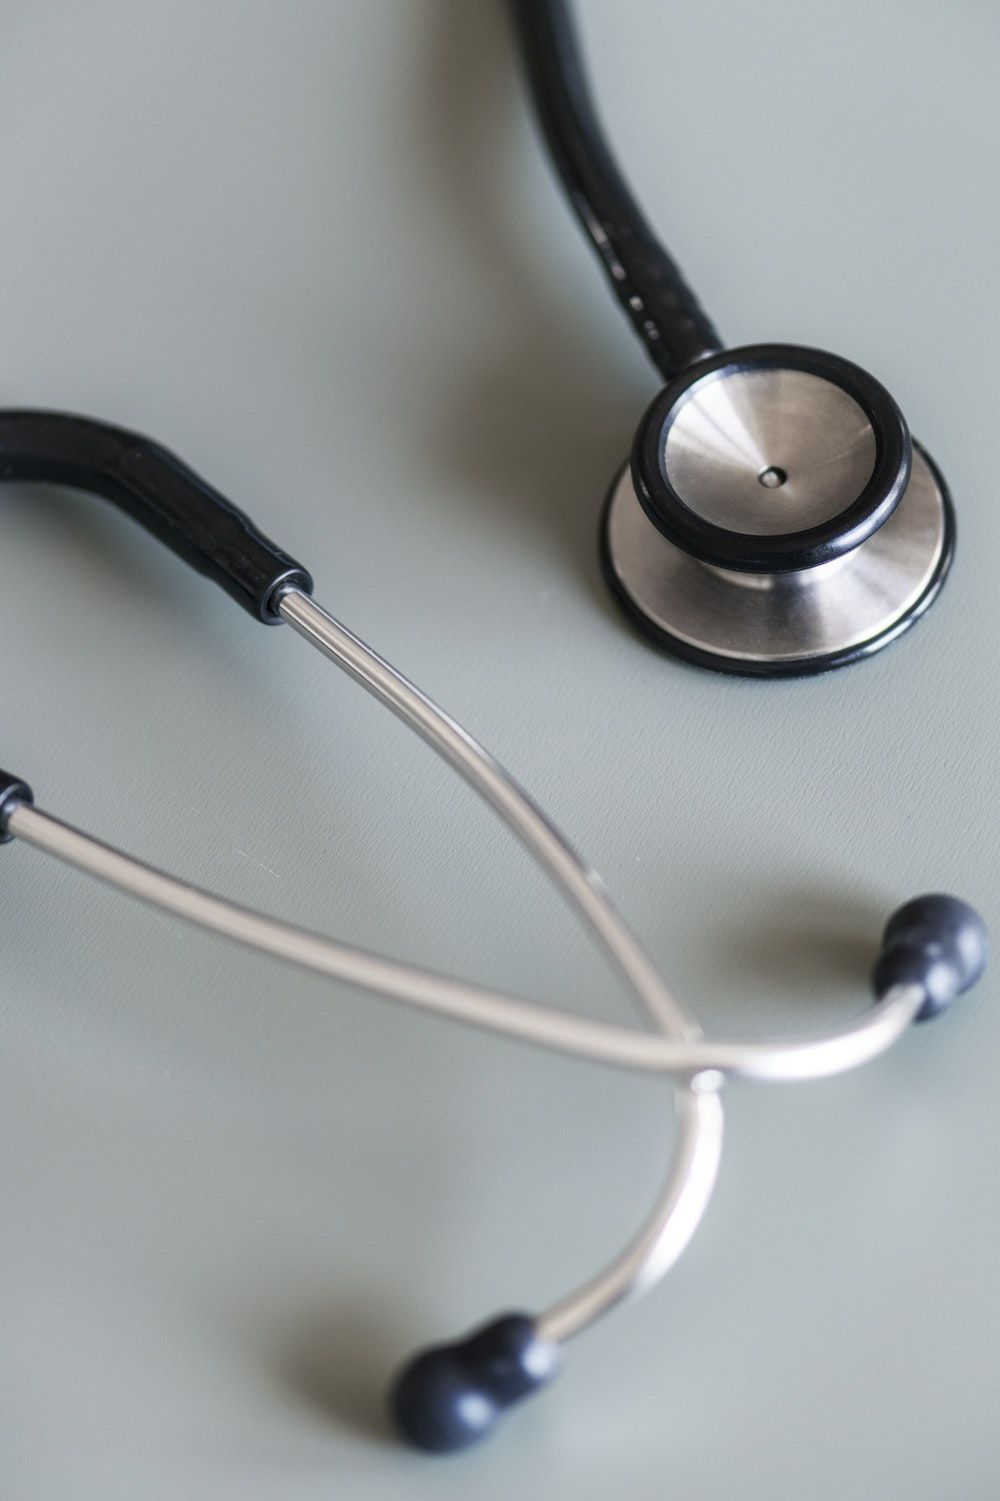 Stethoscope Wallpapers - Top Free Stethoscope Backgrounds ...Doctor Stethoscope Images Hd